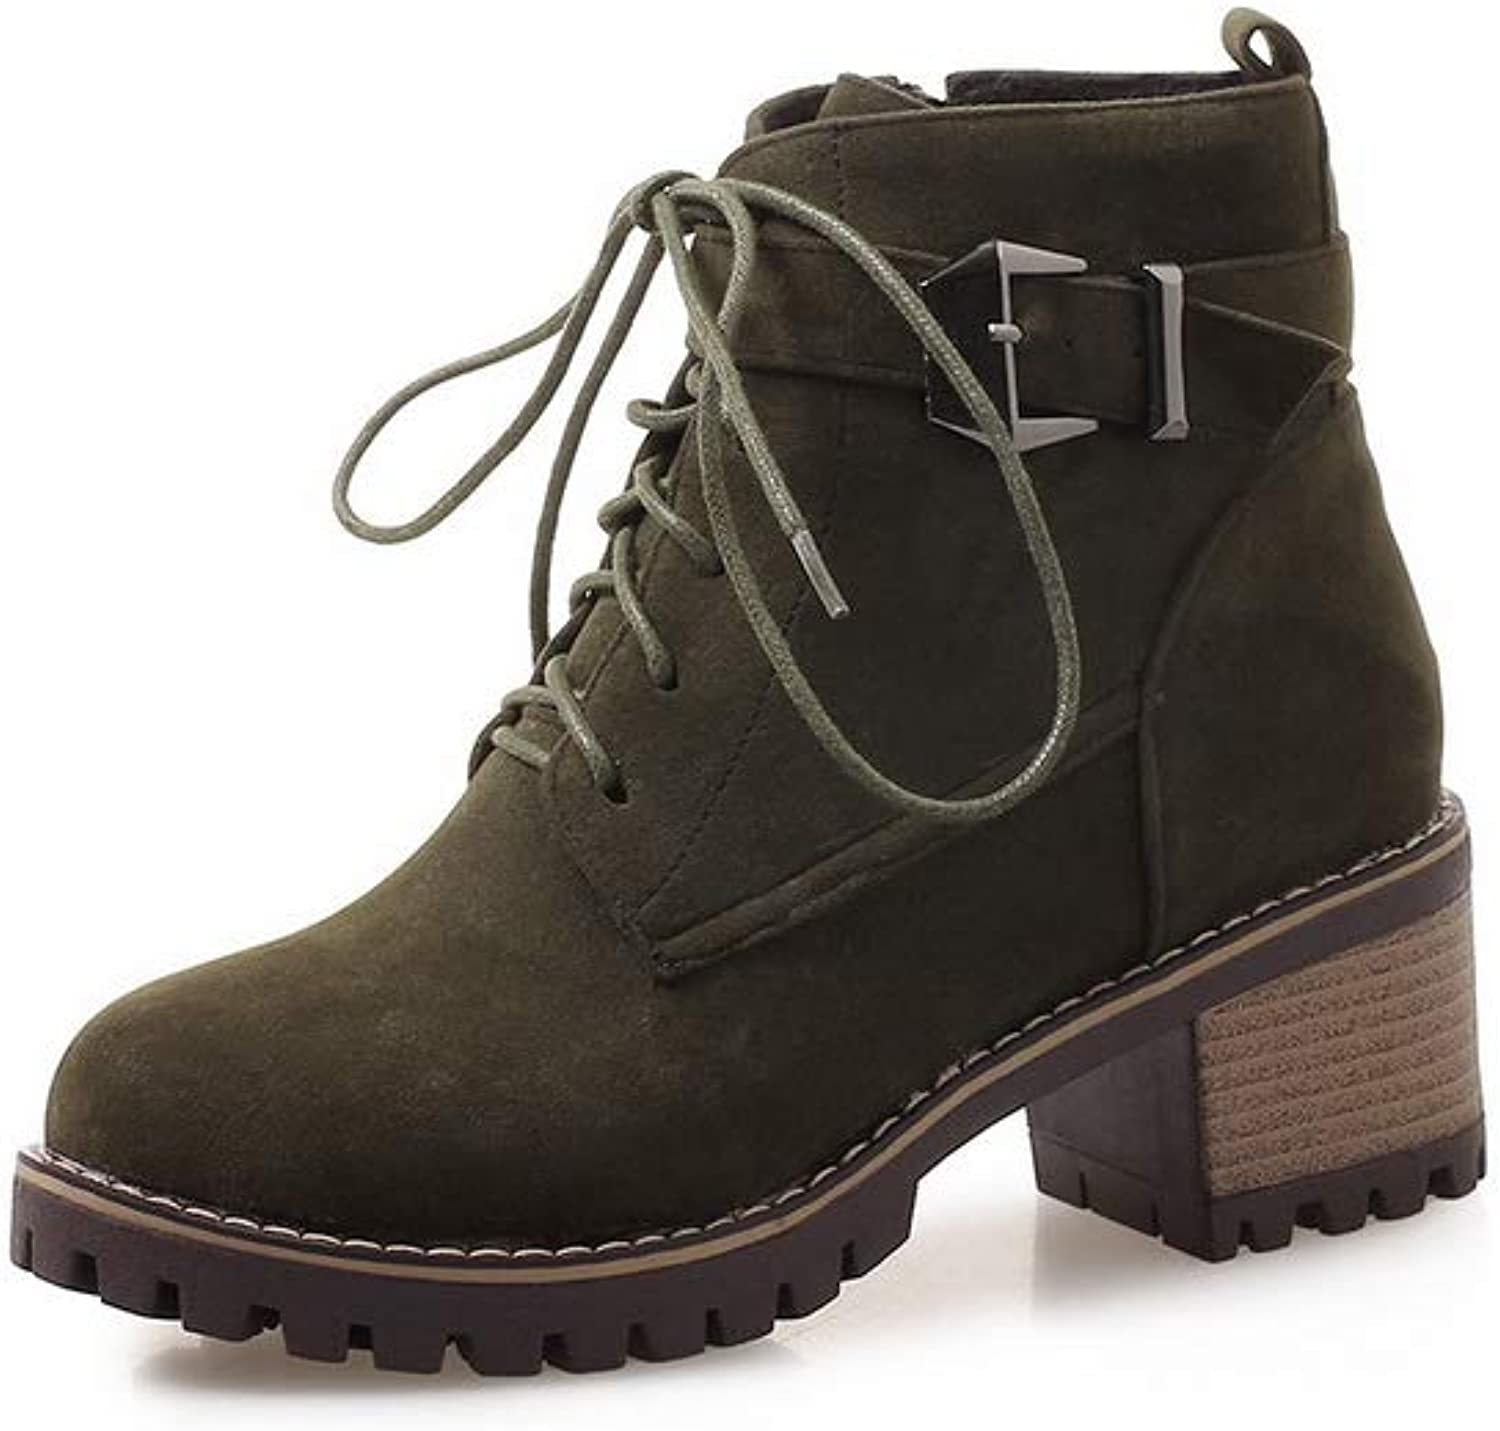 1TO9 Womens Outdoor Mule Solid Urethane Boots MNS02729